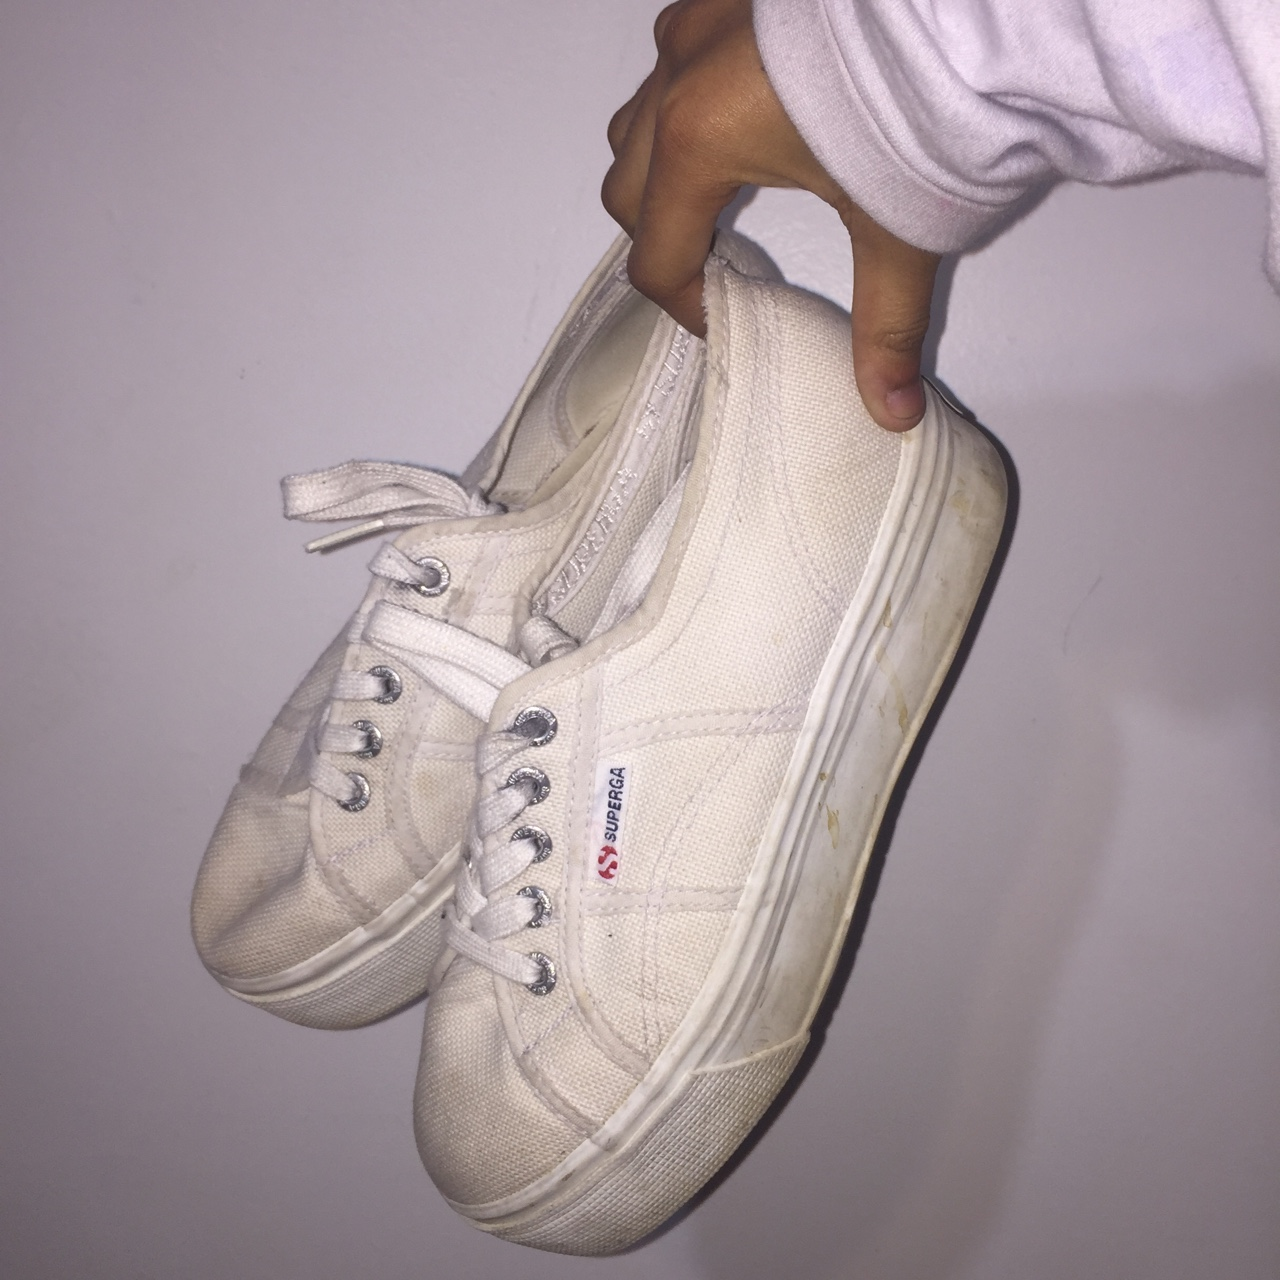 SUPERGA SNEAKERS Off-white but can be